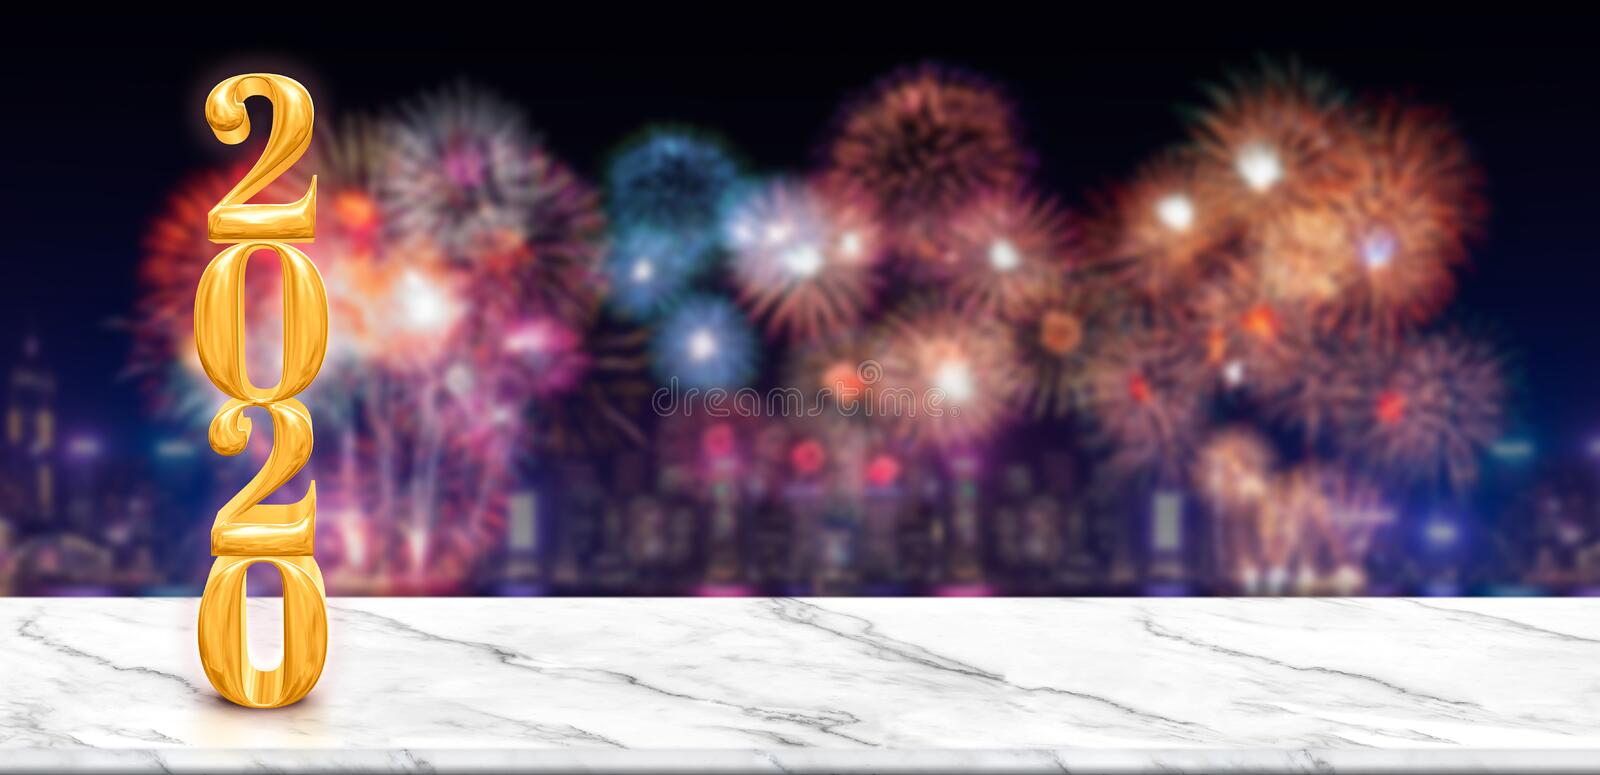 Happy new year 2020 3d rendering fireworks over cityscape at night with empty white marble table,Banner mock up template for stock illustration